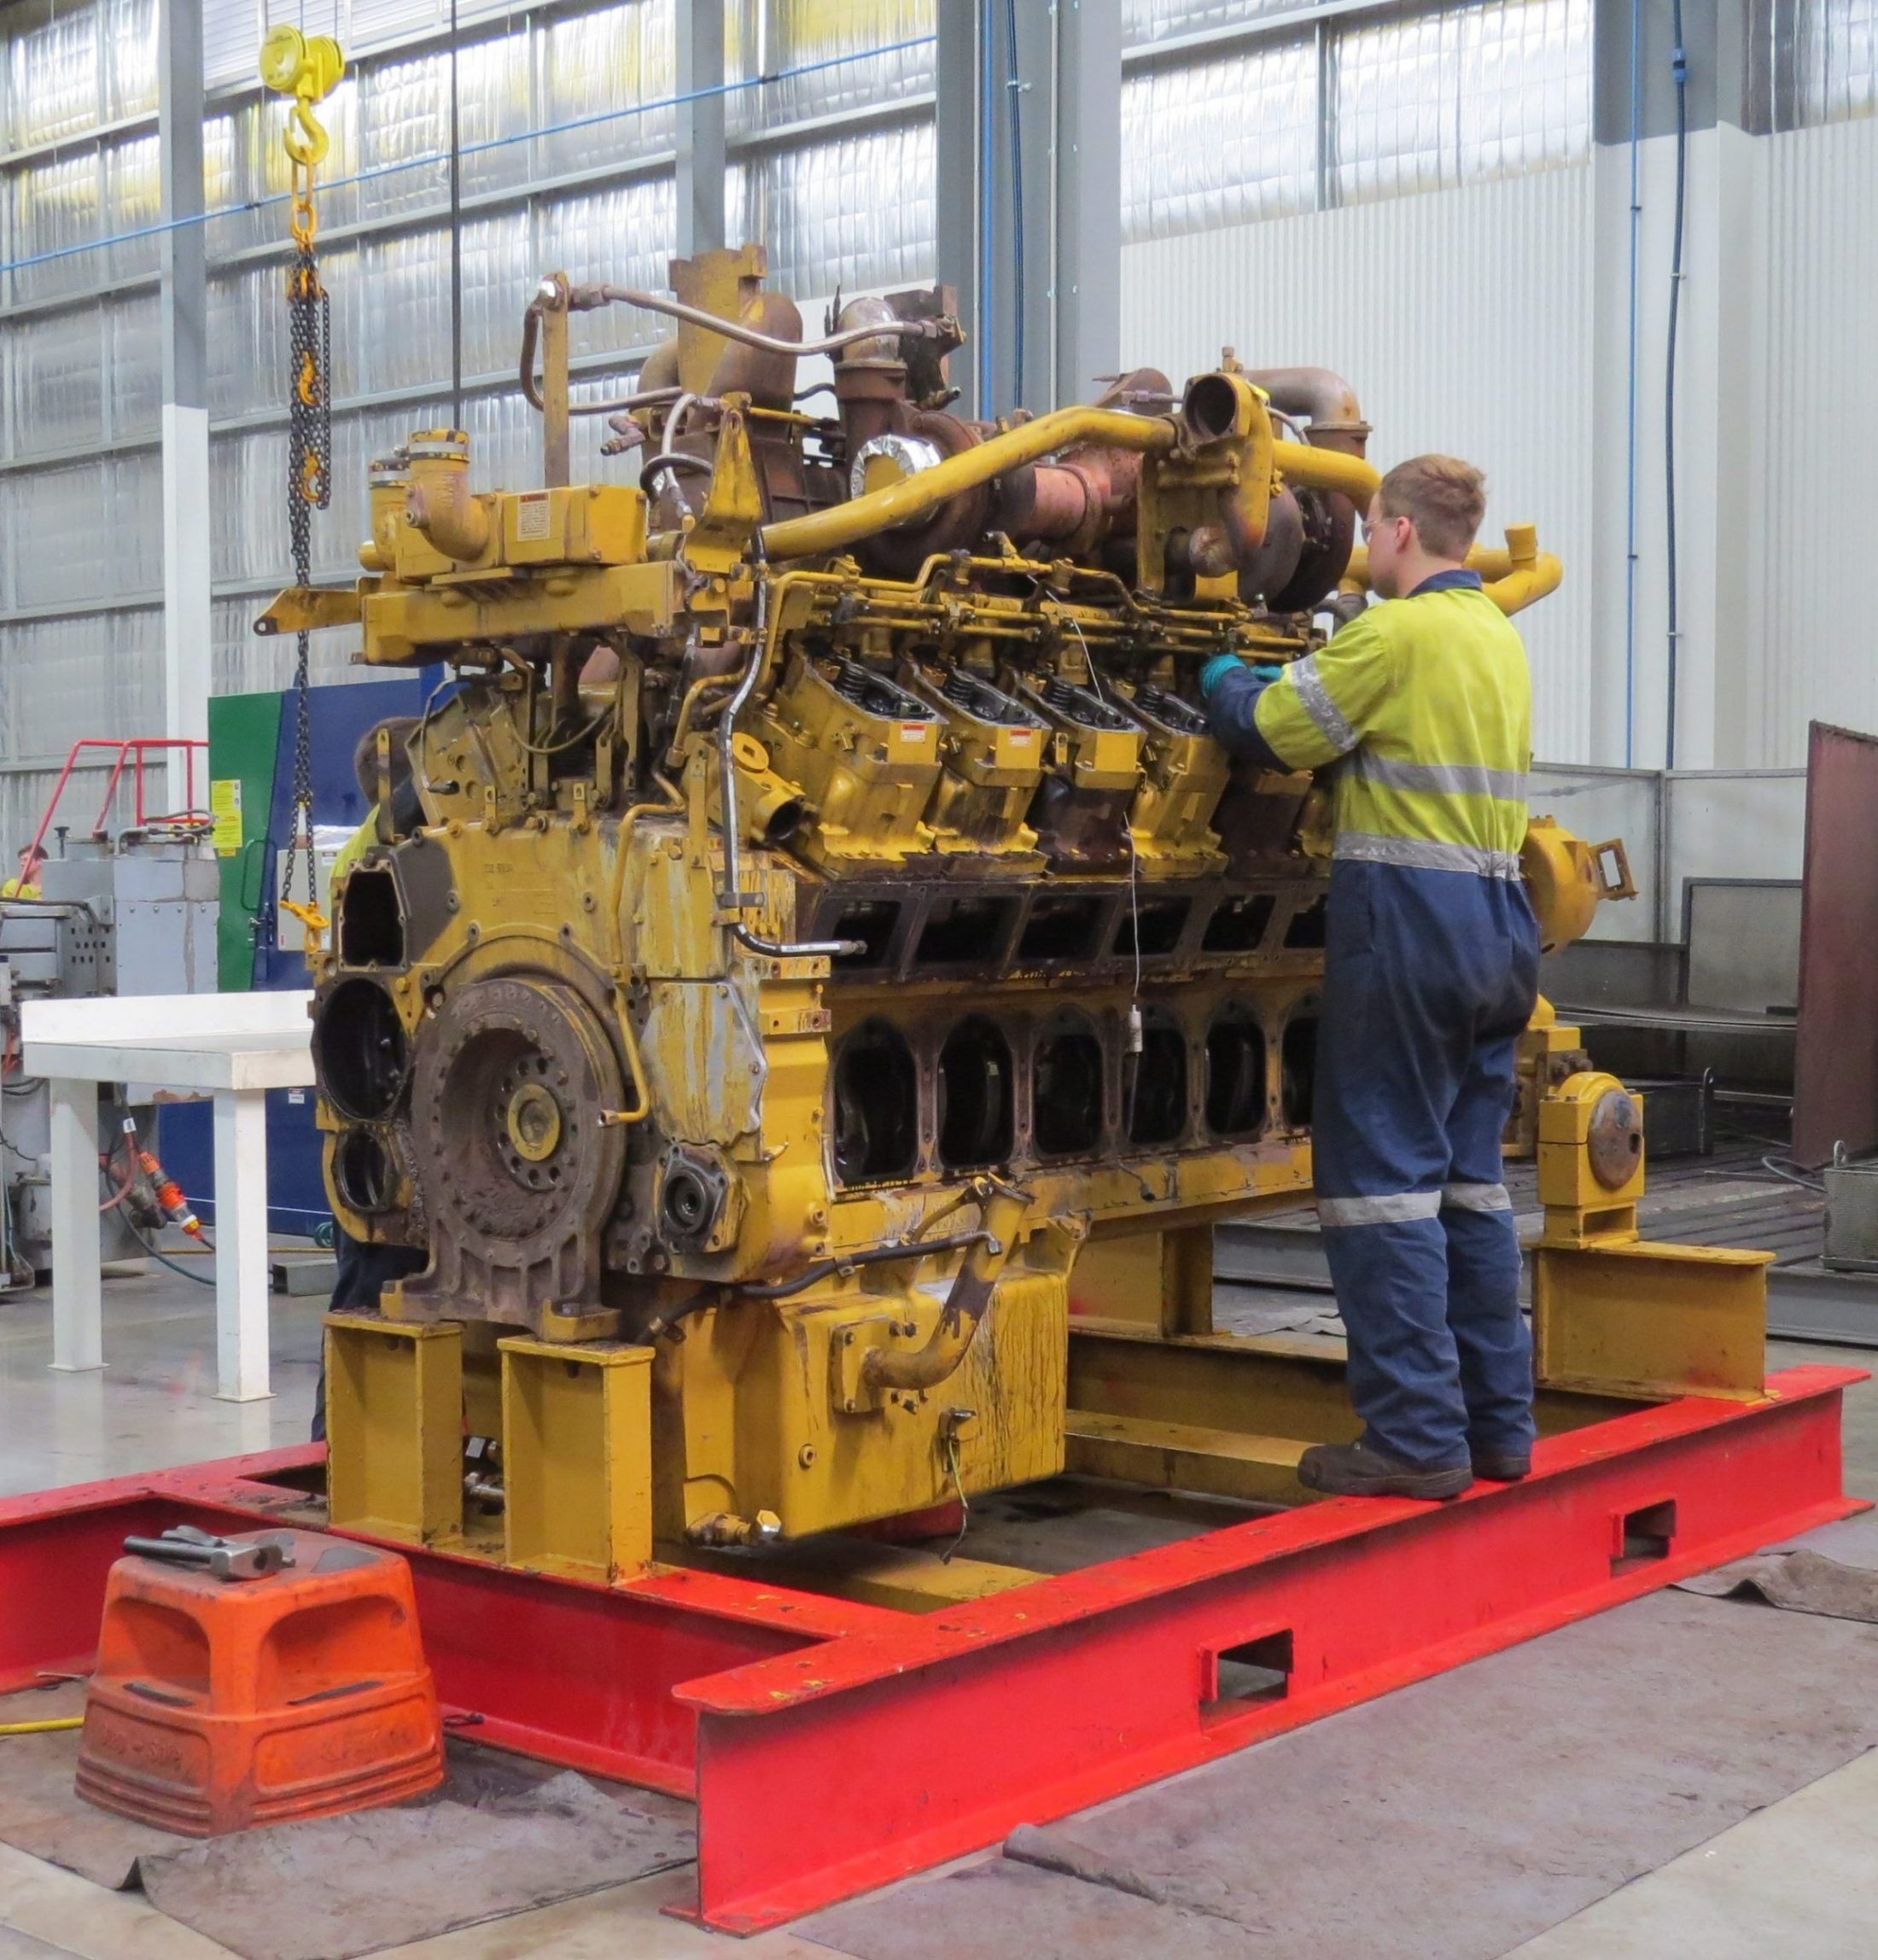 Cavpower employee repairing engine at Cavpower's Component Rebuild Centre